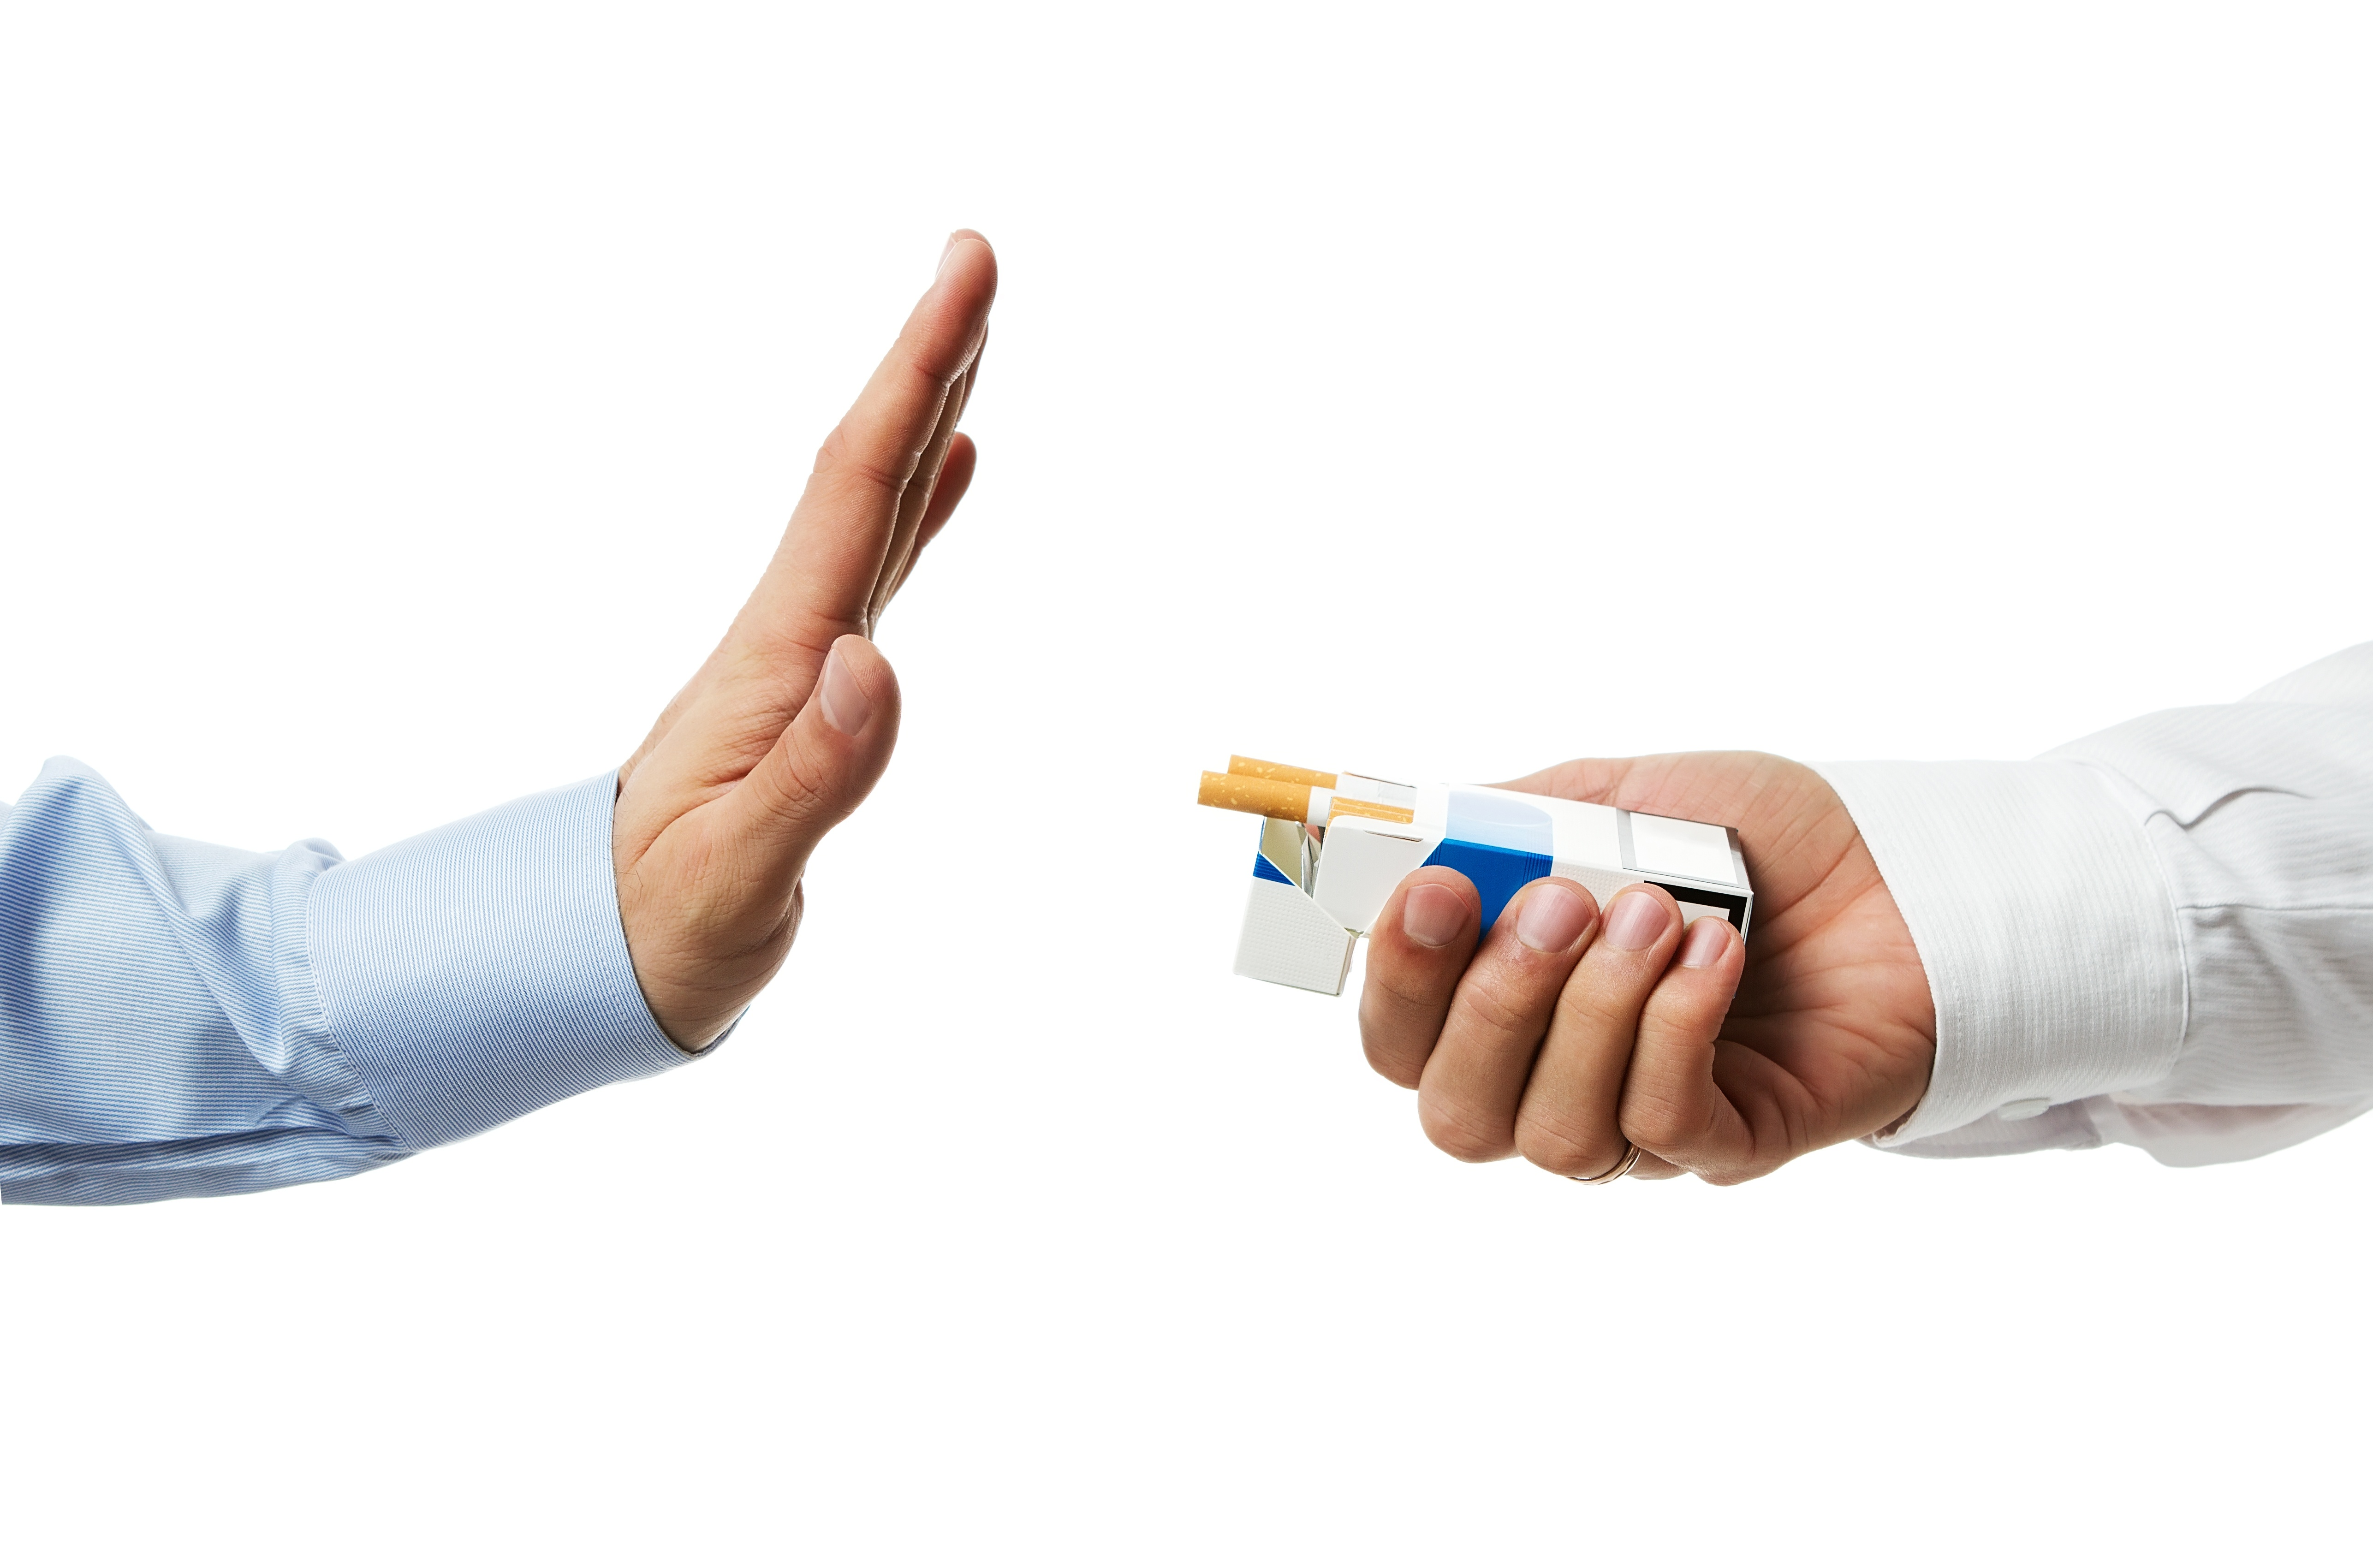 Quitting Smoking: Why It's So Hard and How to Conquer the Habit